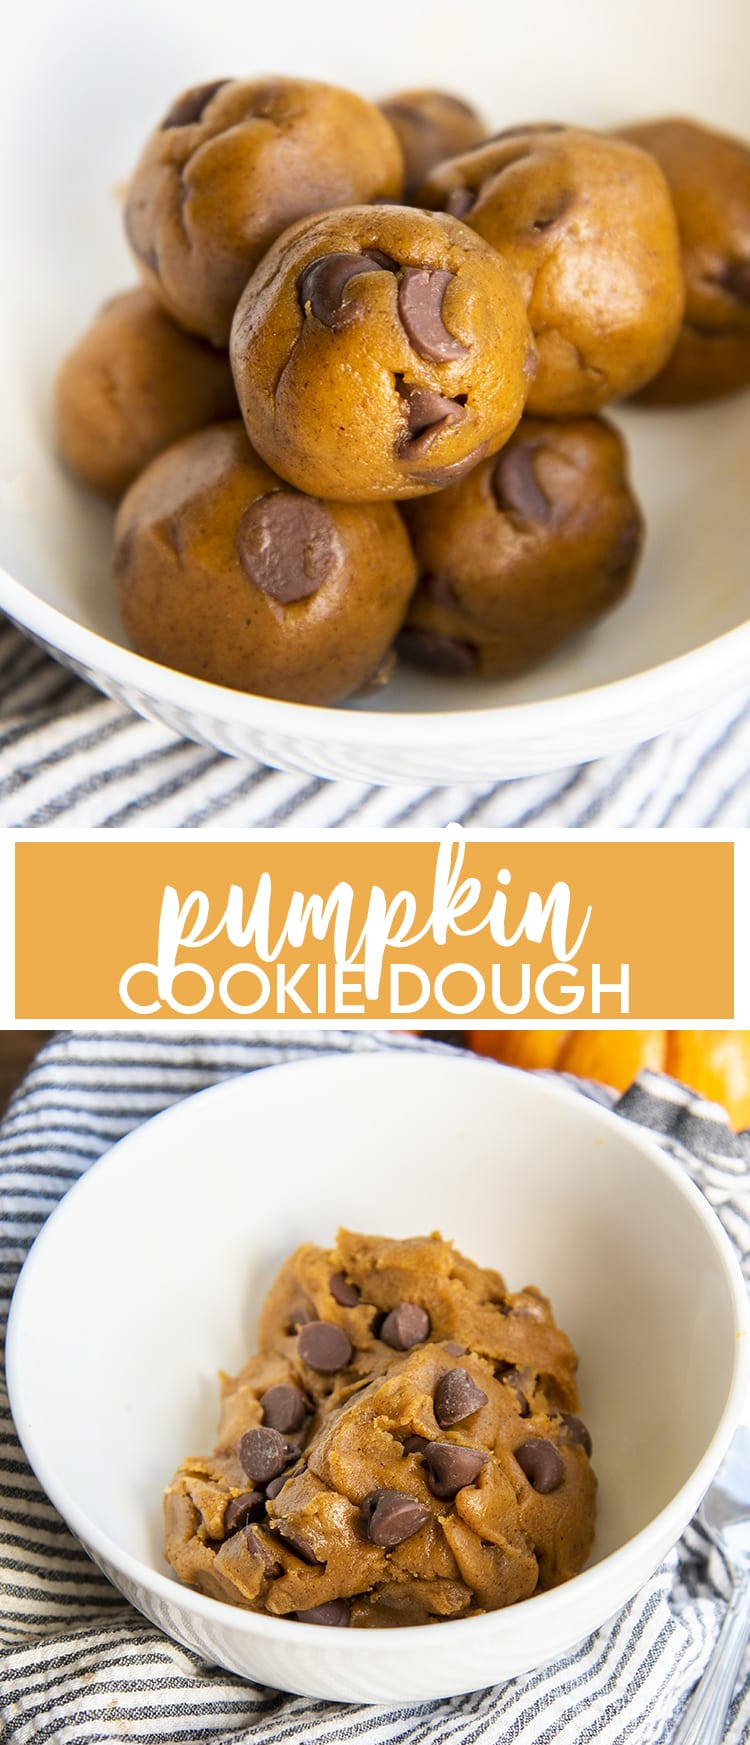 A collage of two photos, pumpkin cookie dough balls, then text saying Pumpkin Cookie Dough, then another photo of pumpkin chocolate chip cookie dough in a white bowl.